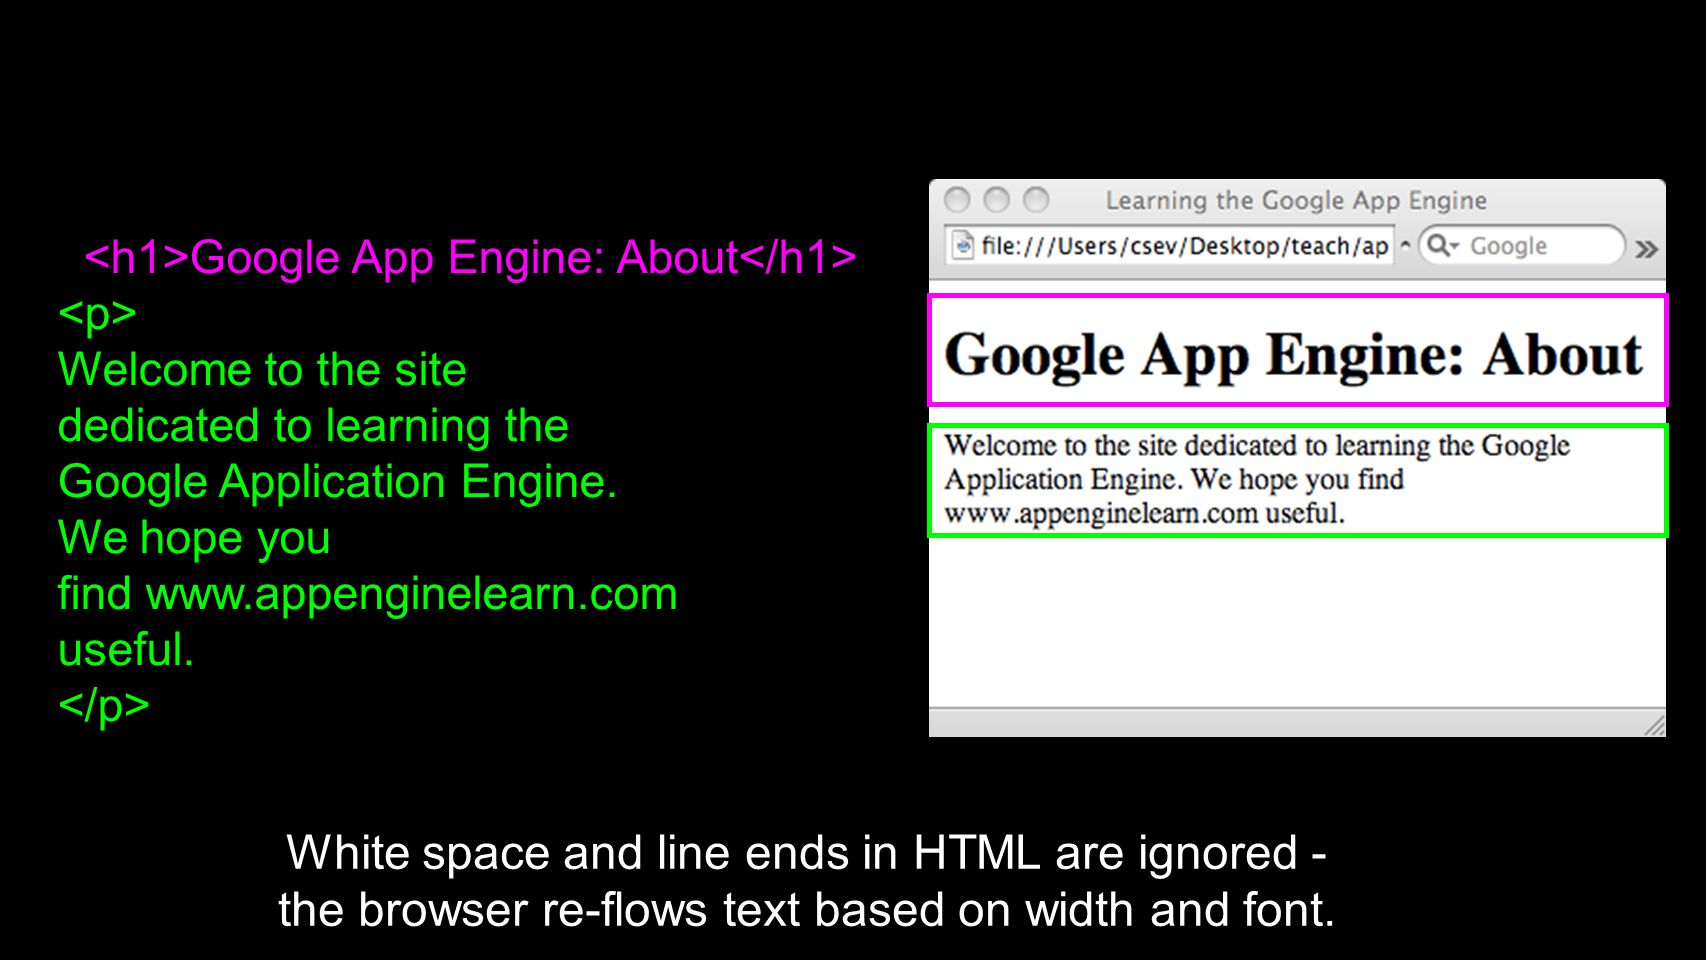 White space and line ends in HTML are ignored - the browser re-flows text based on width and font.